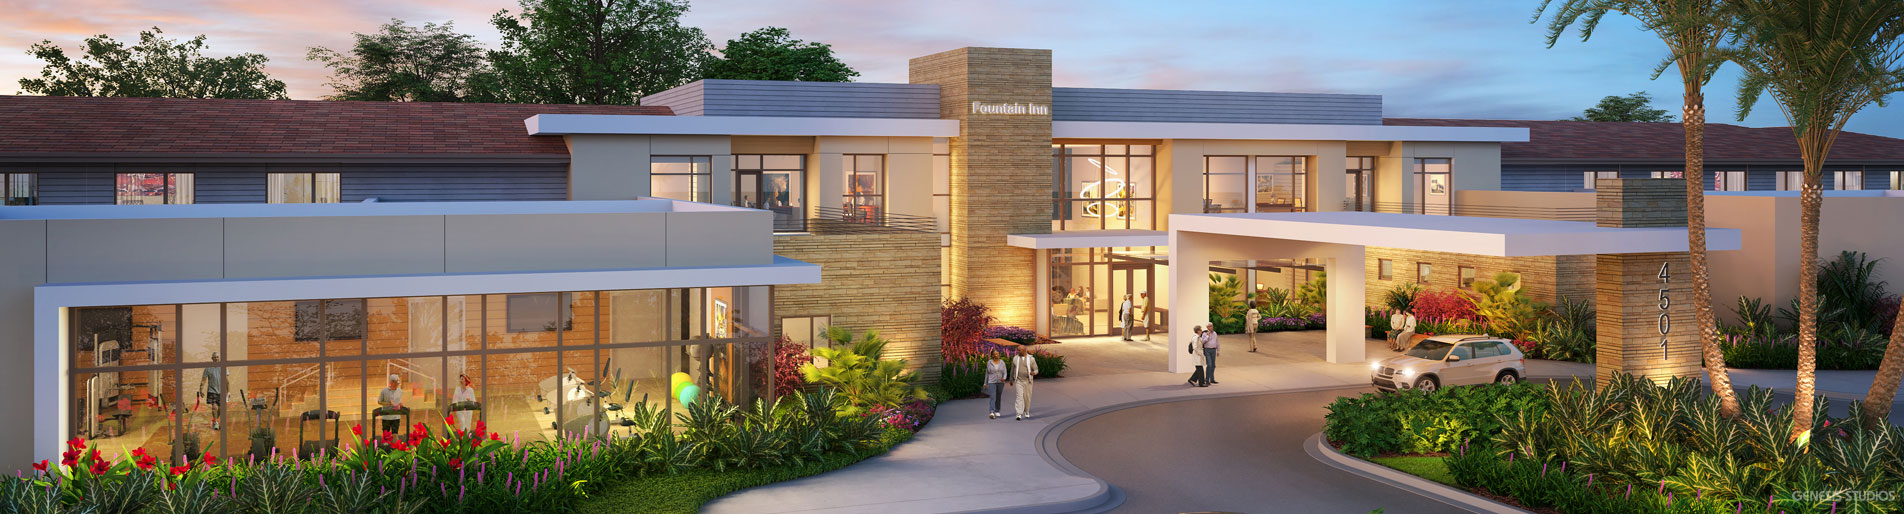 717037 Digital Photorealistic Archtiectural Rendering of Fountain Inn Exterior at Dusk for Lantz Boggio Architects